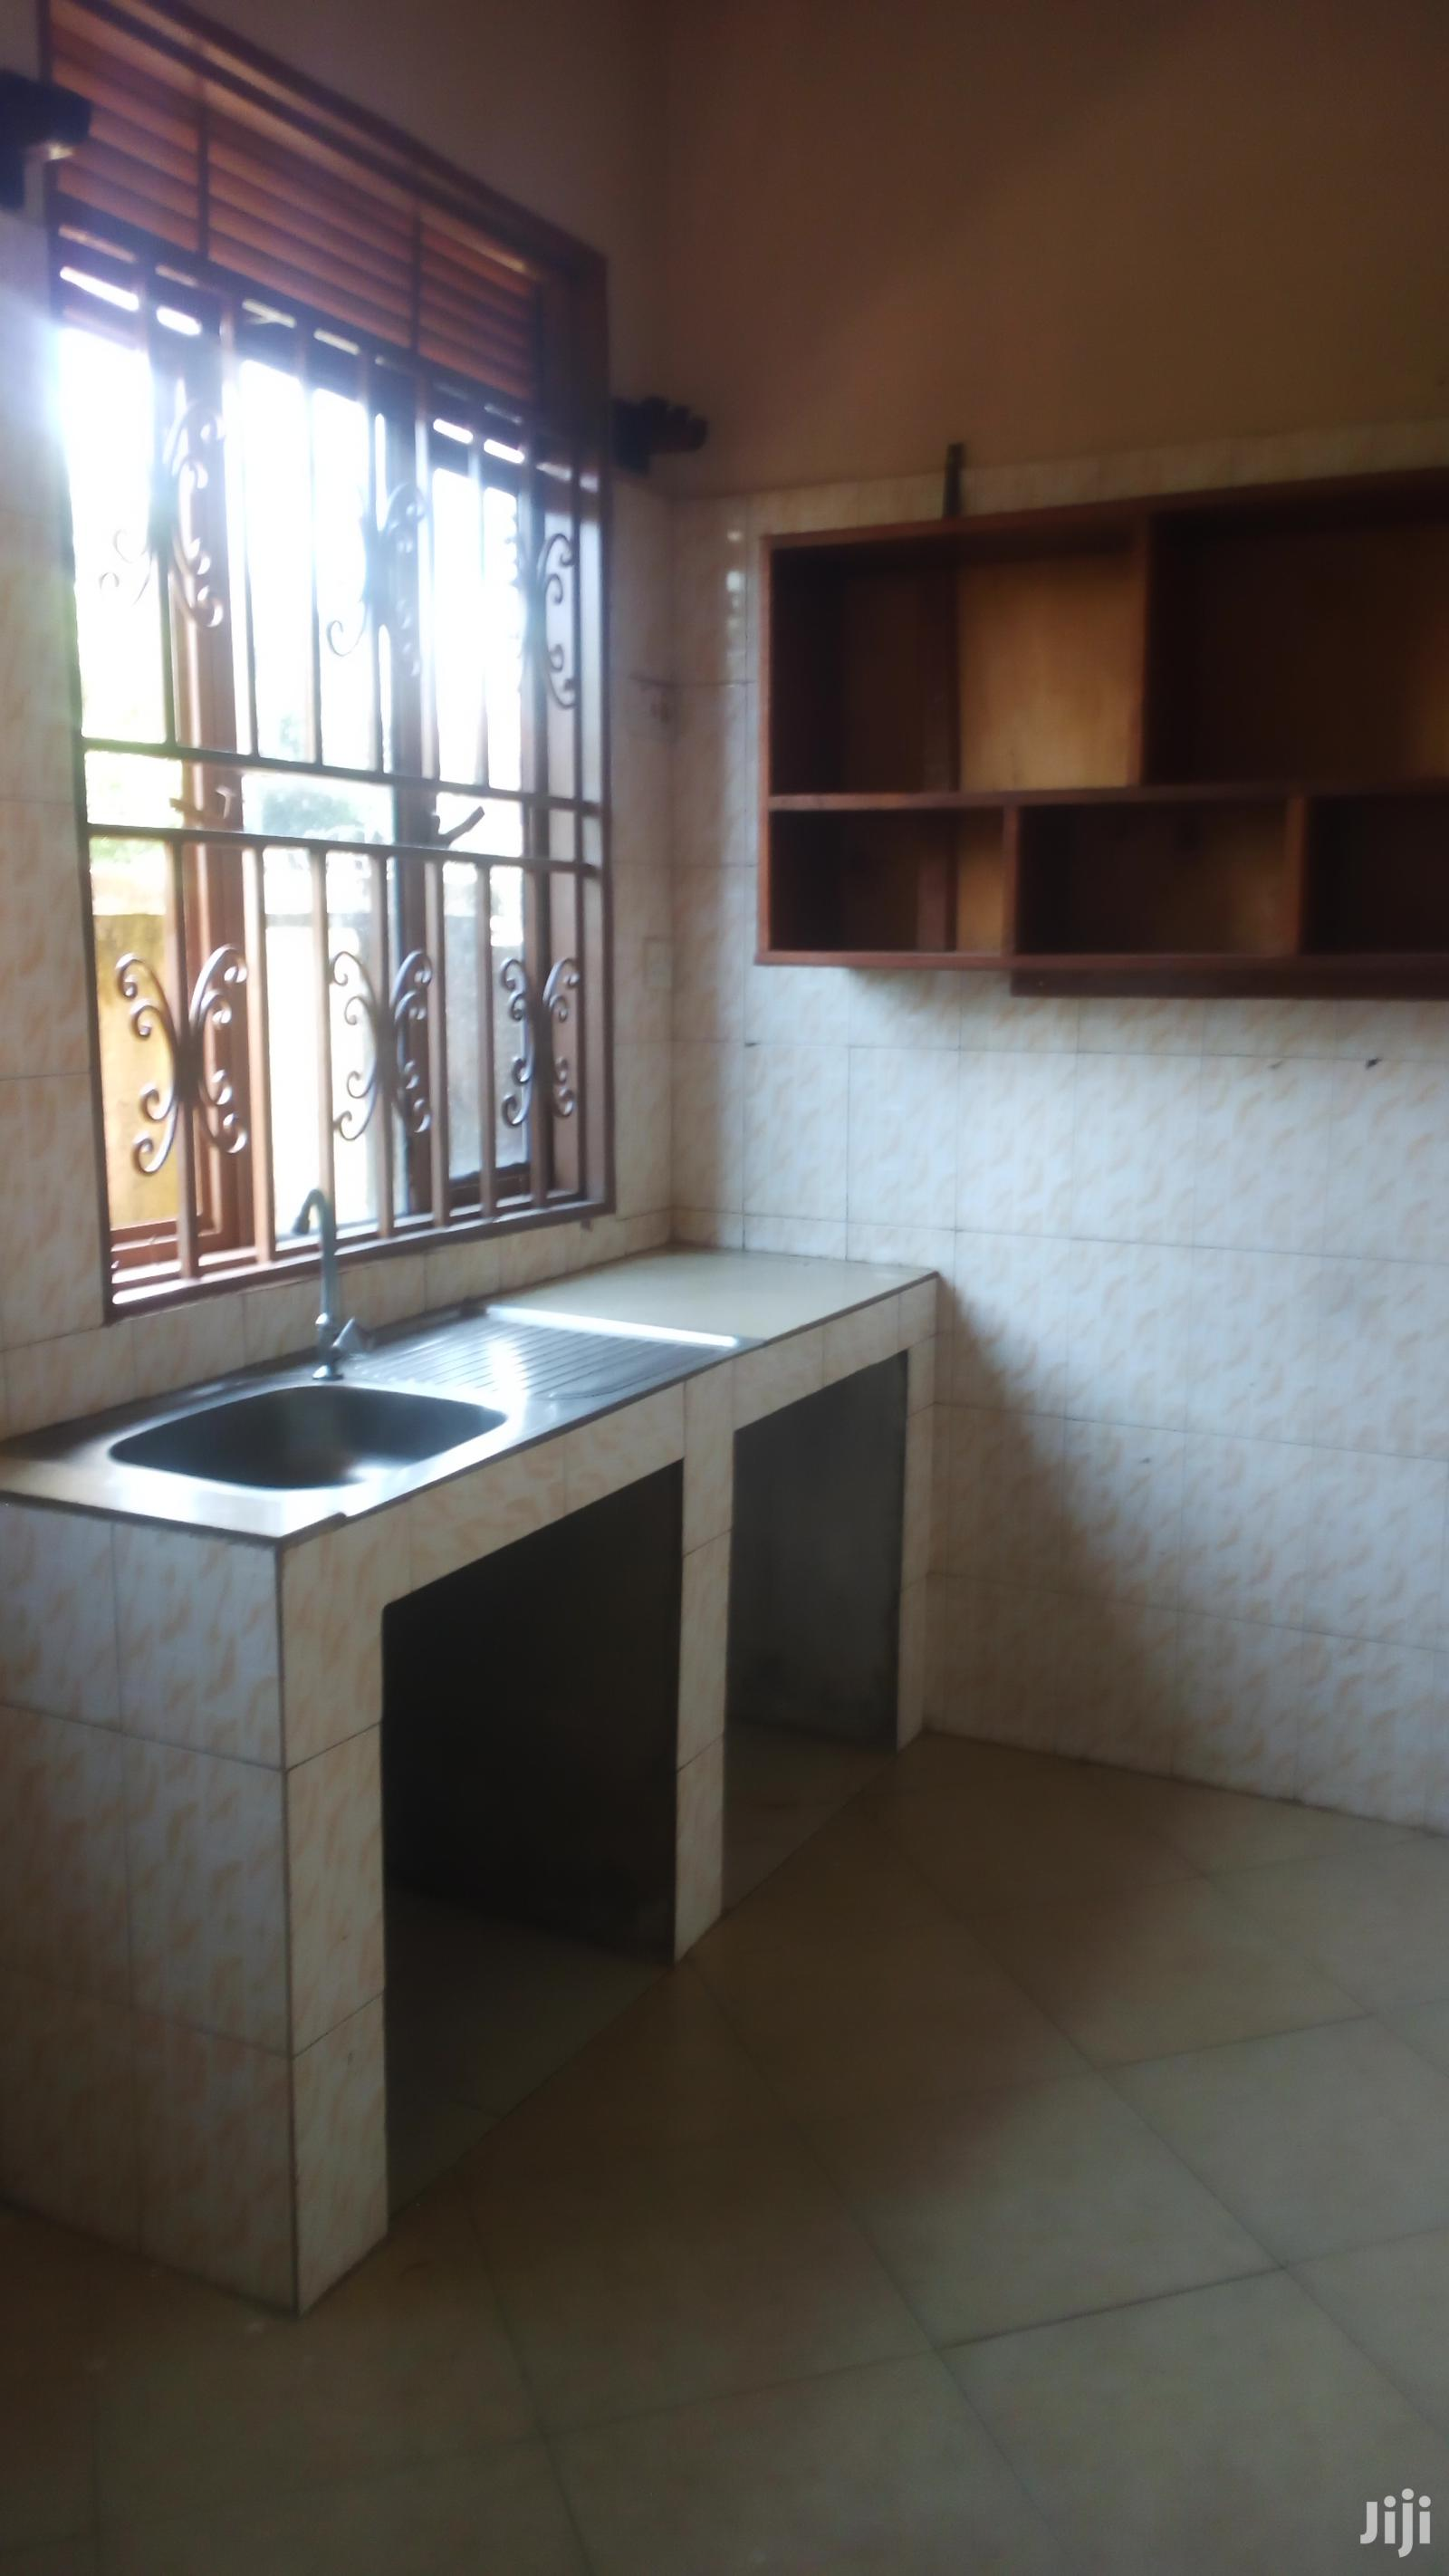 Amazing 2bedroom House For Rent In Bweyogerere Self Contained Next | Houses & Apartments For Rent for sale in Kampala, Central Region, Uganda